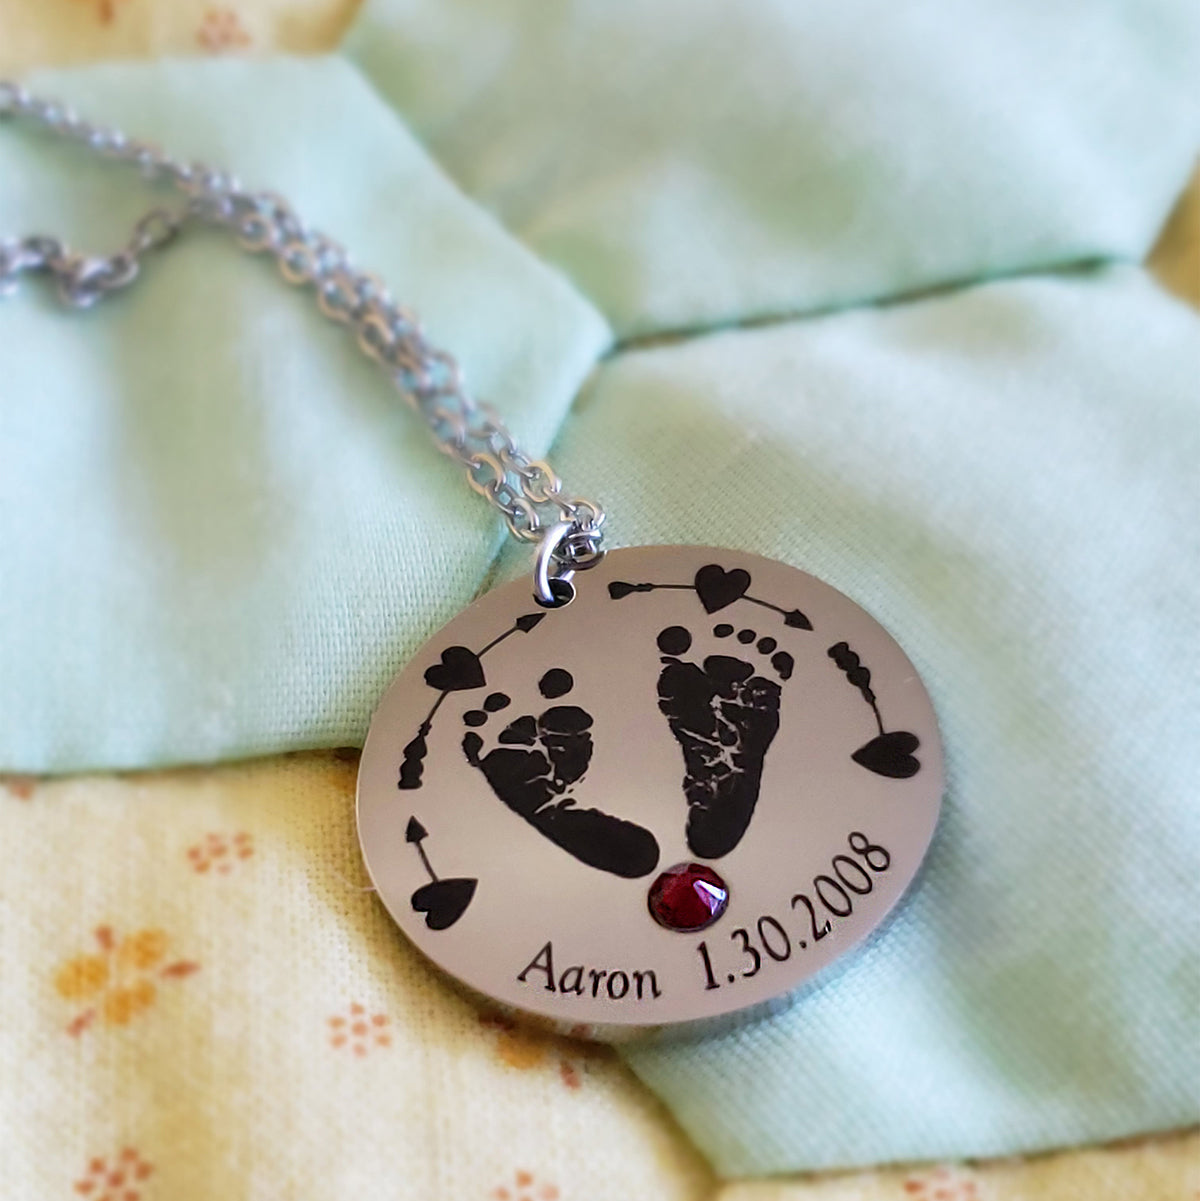 PERSONALIZED - Remember the Birth of Your Baby Forever with Her Name, Birth Date, Birthstone, and Footprints!